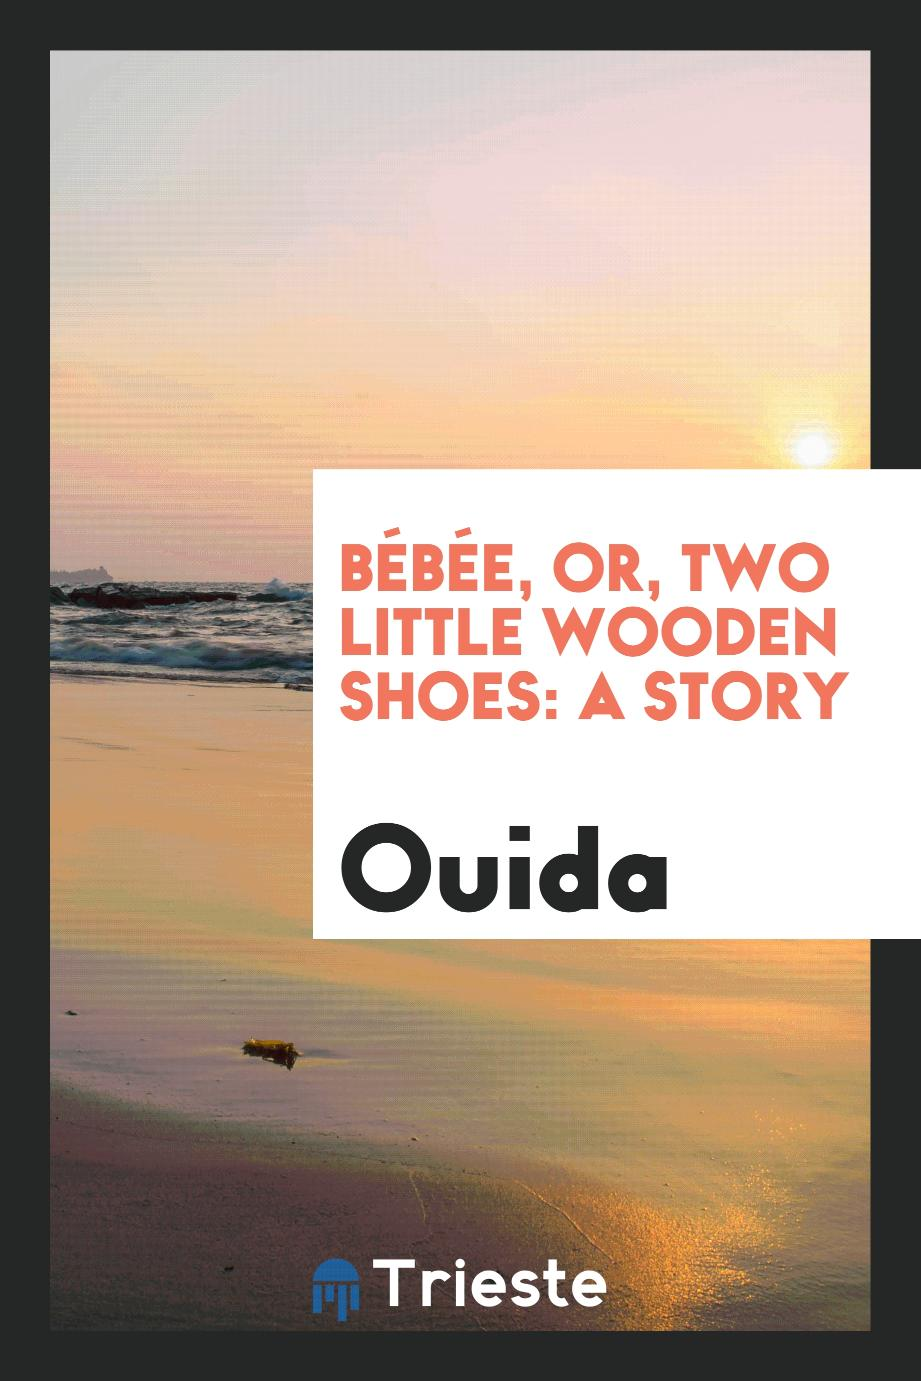 Bébée, or, Two Little Wooden Shoes: A Story